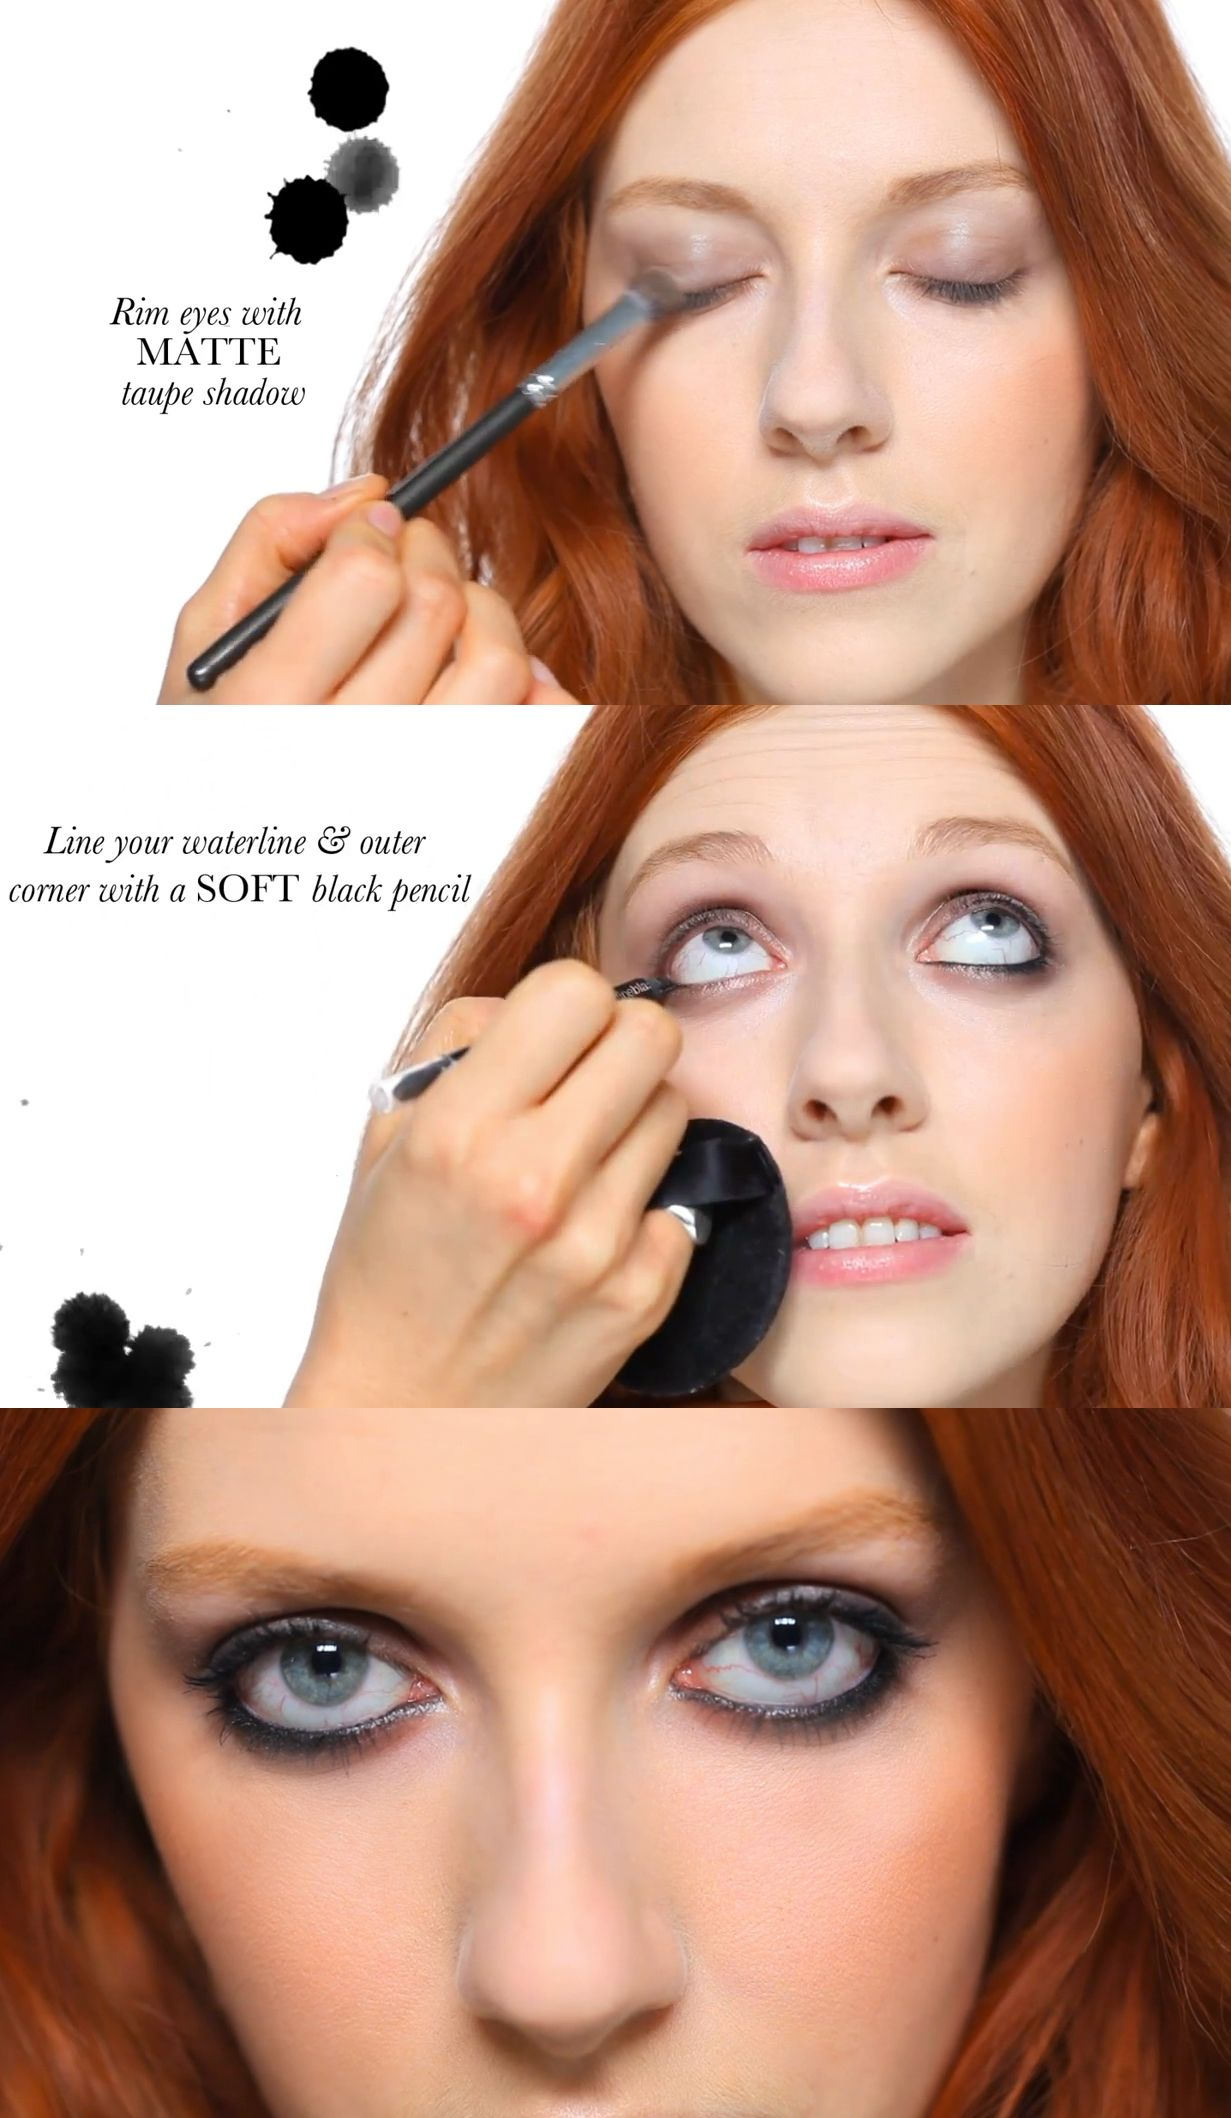 How To Get A Flawless Grunge Makeup Look I Like The Makeup But I